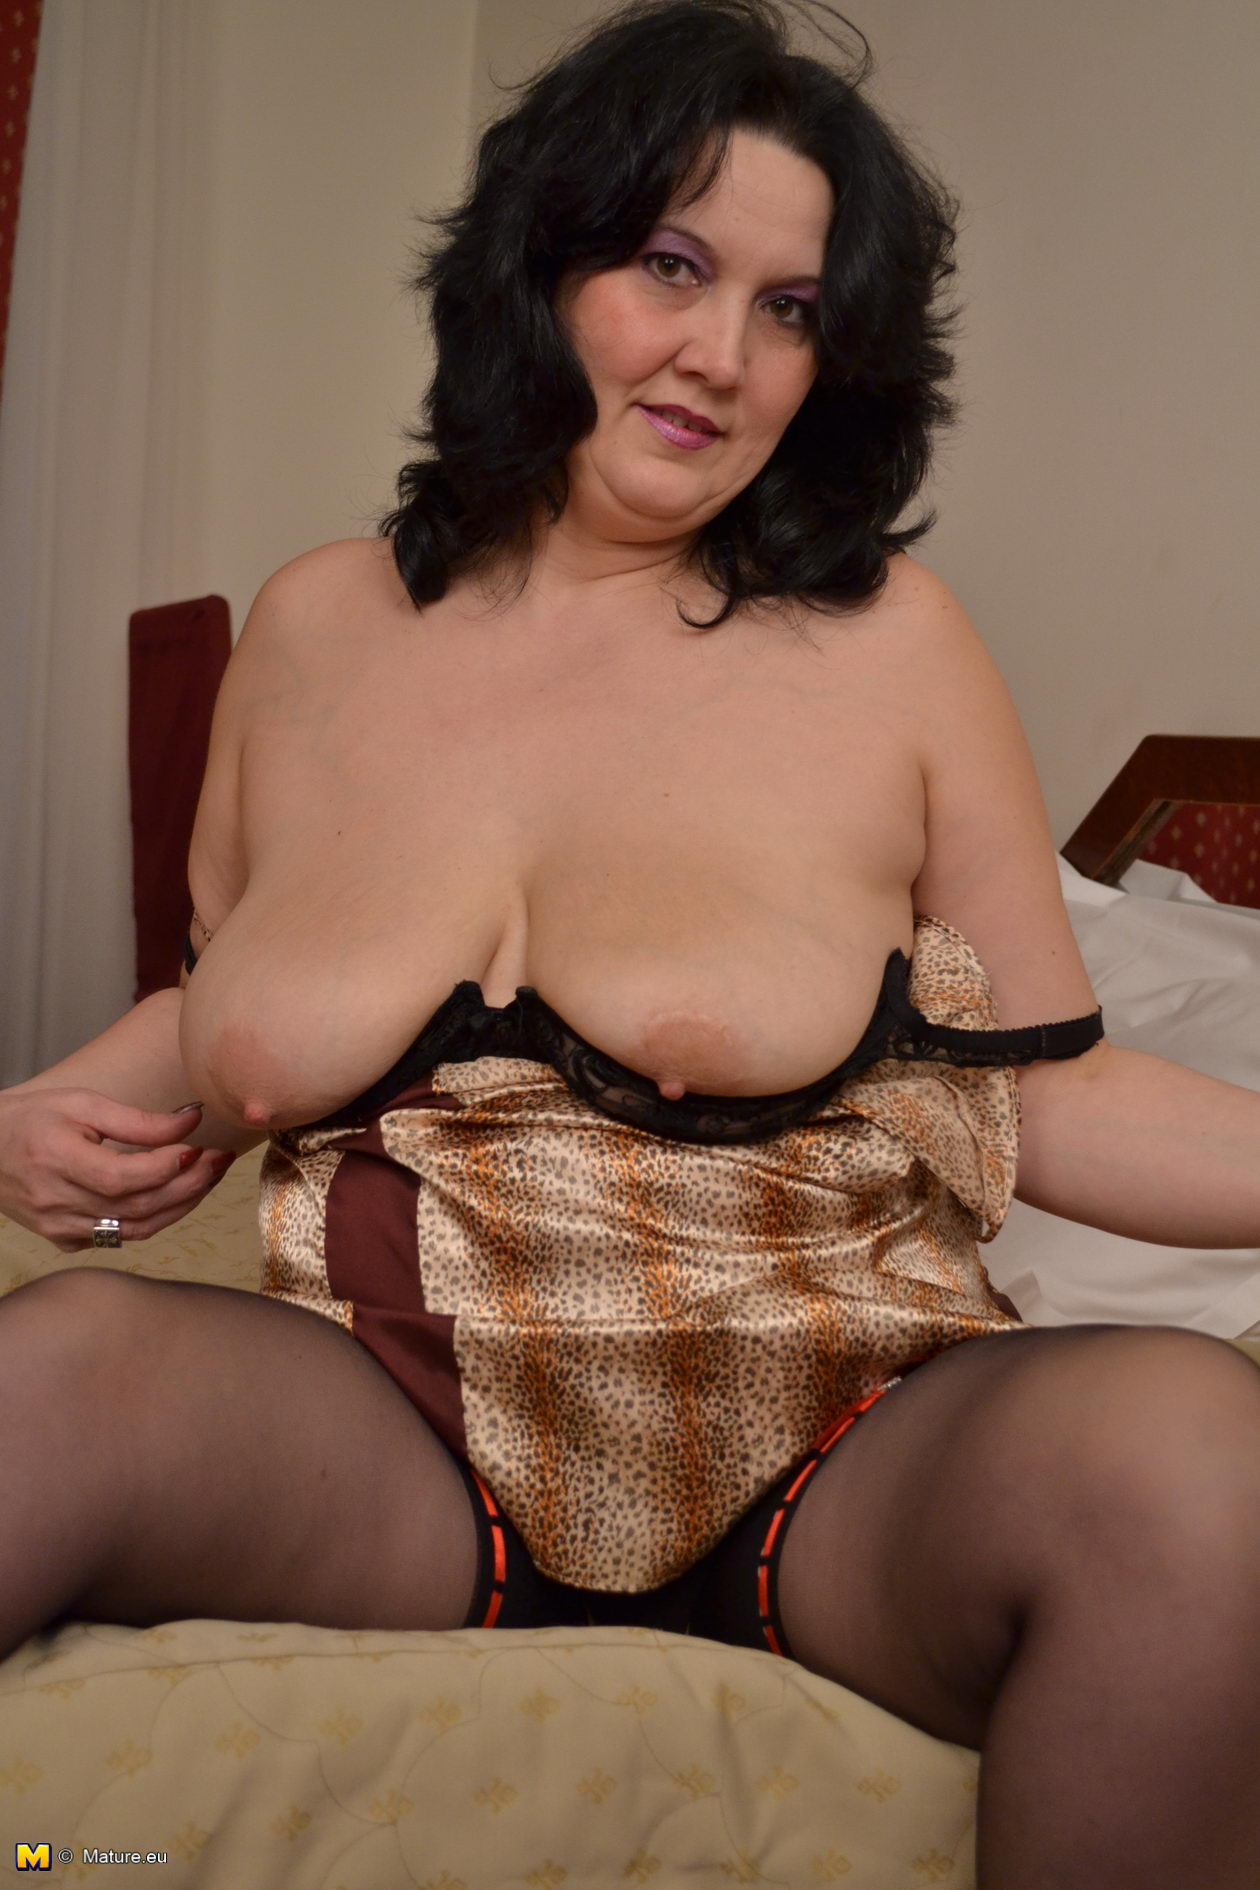 mature sex toy playing with her pussy - grannypornpics